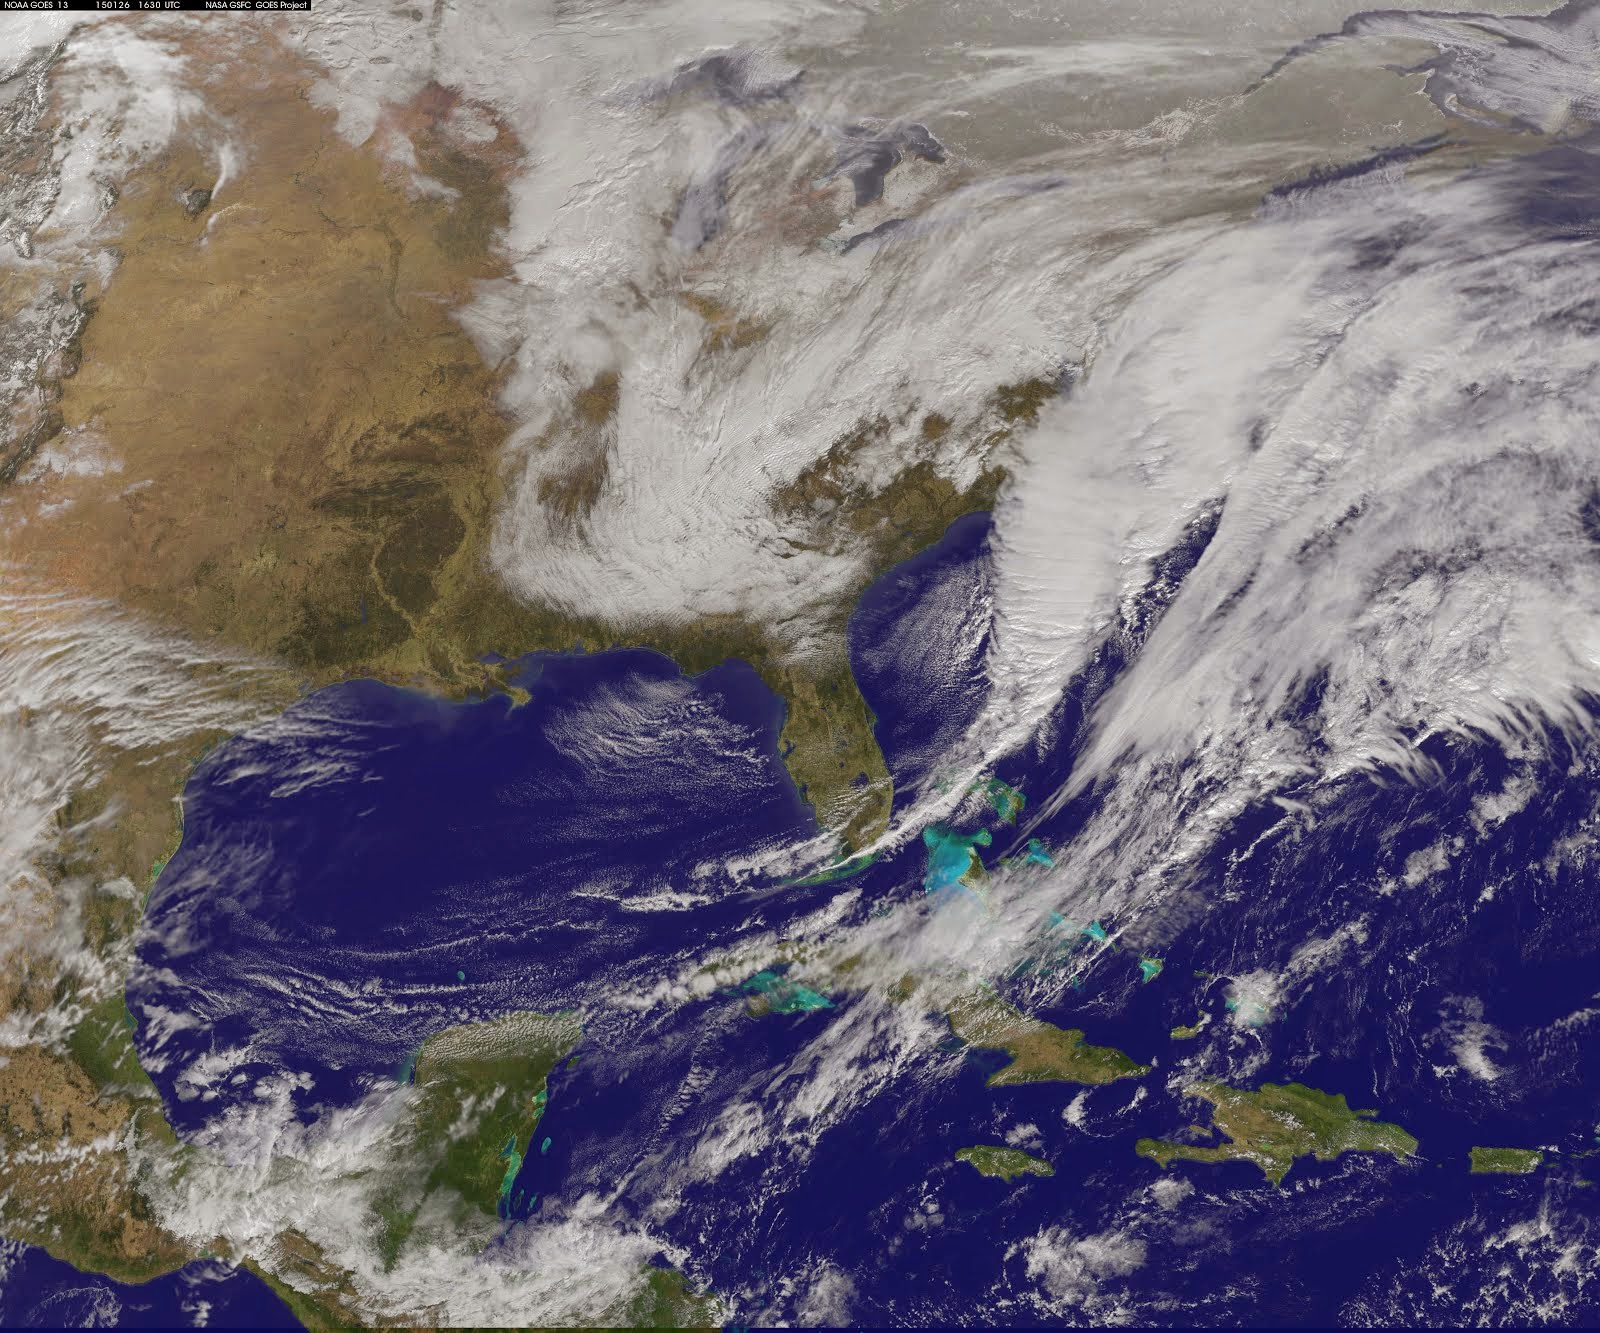 NOAA'S GOES-EAST SATELLITE'S IMAGE OF NOR'EASTER